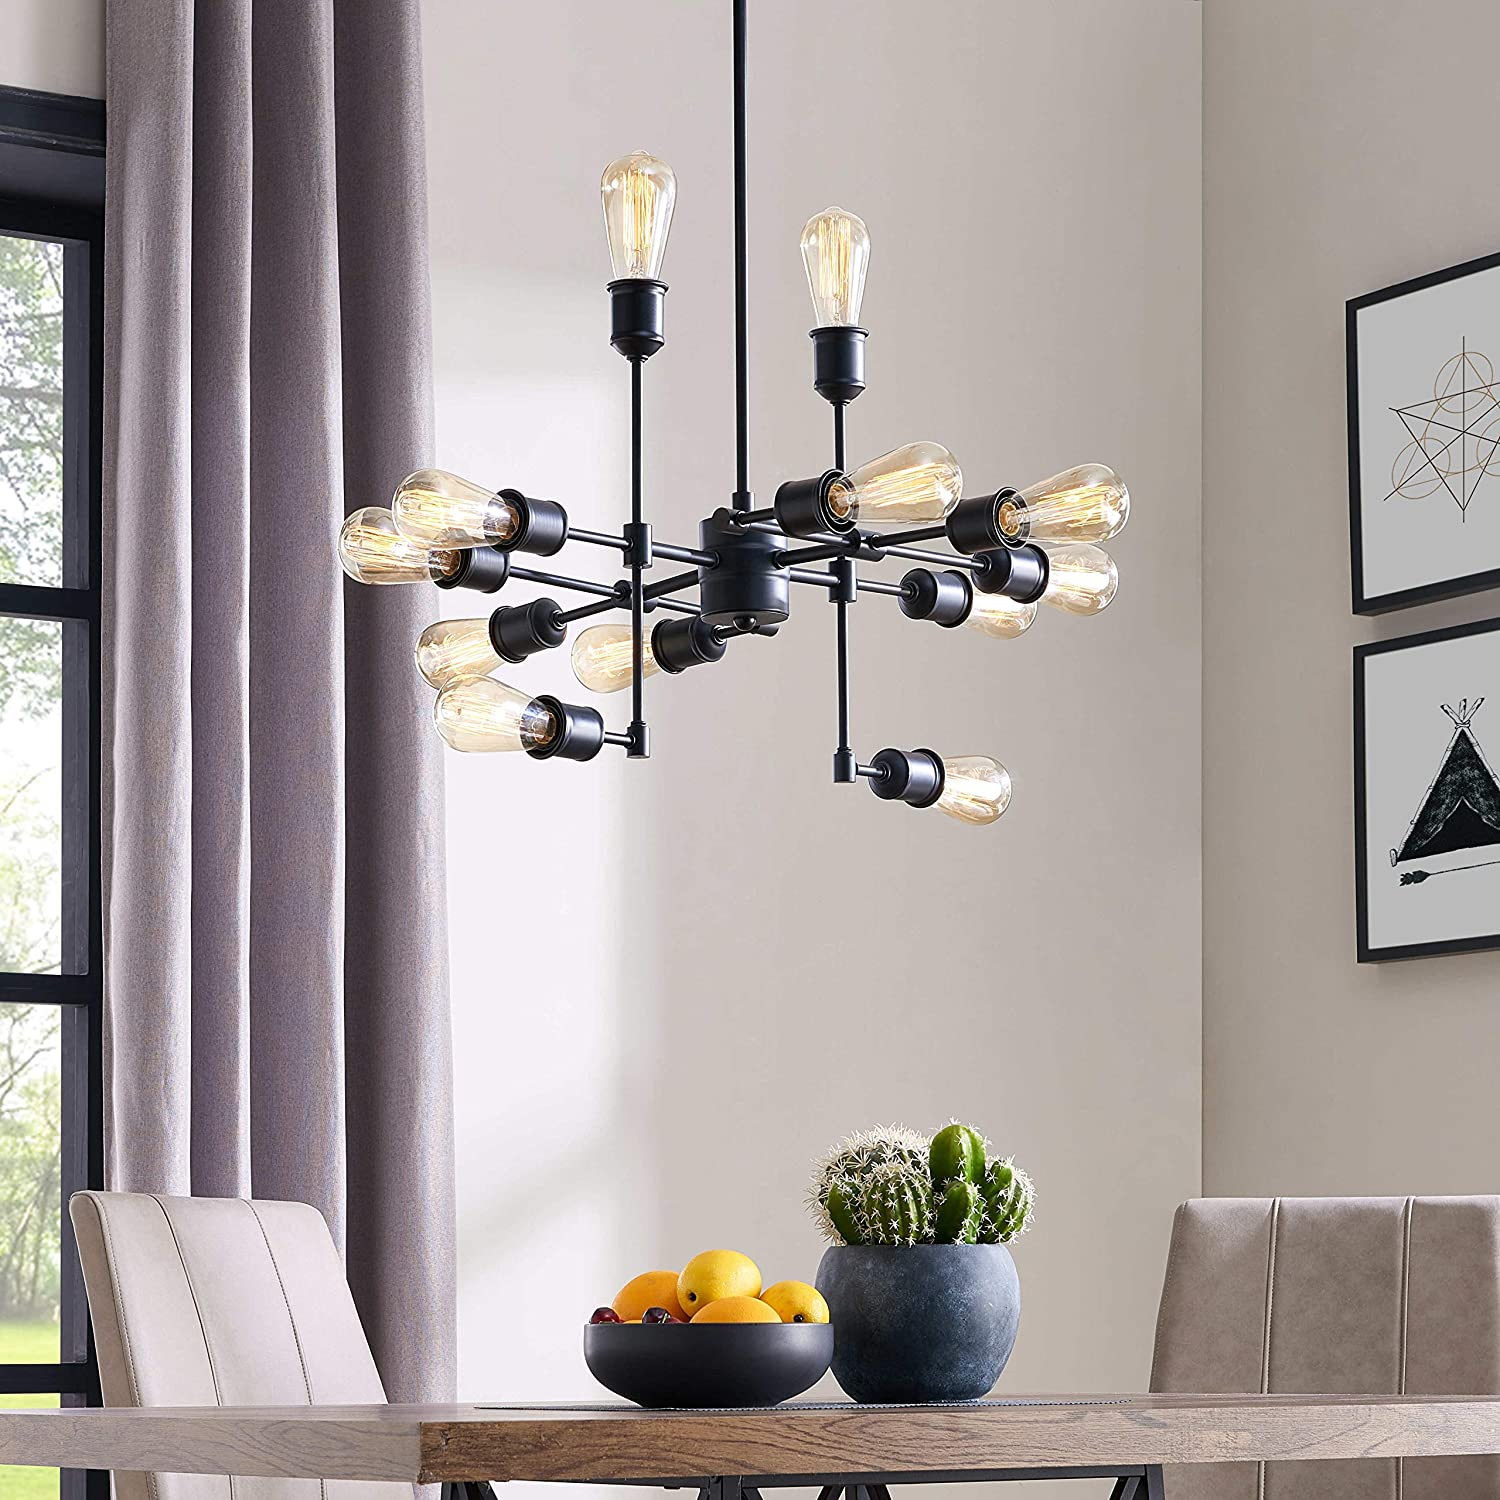 Belleze mid century 12 light chandelier modern pendant lighting